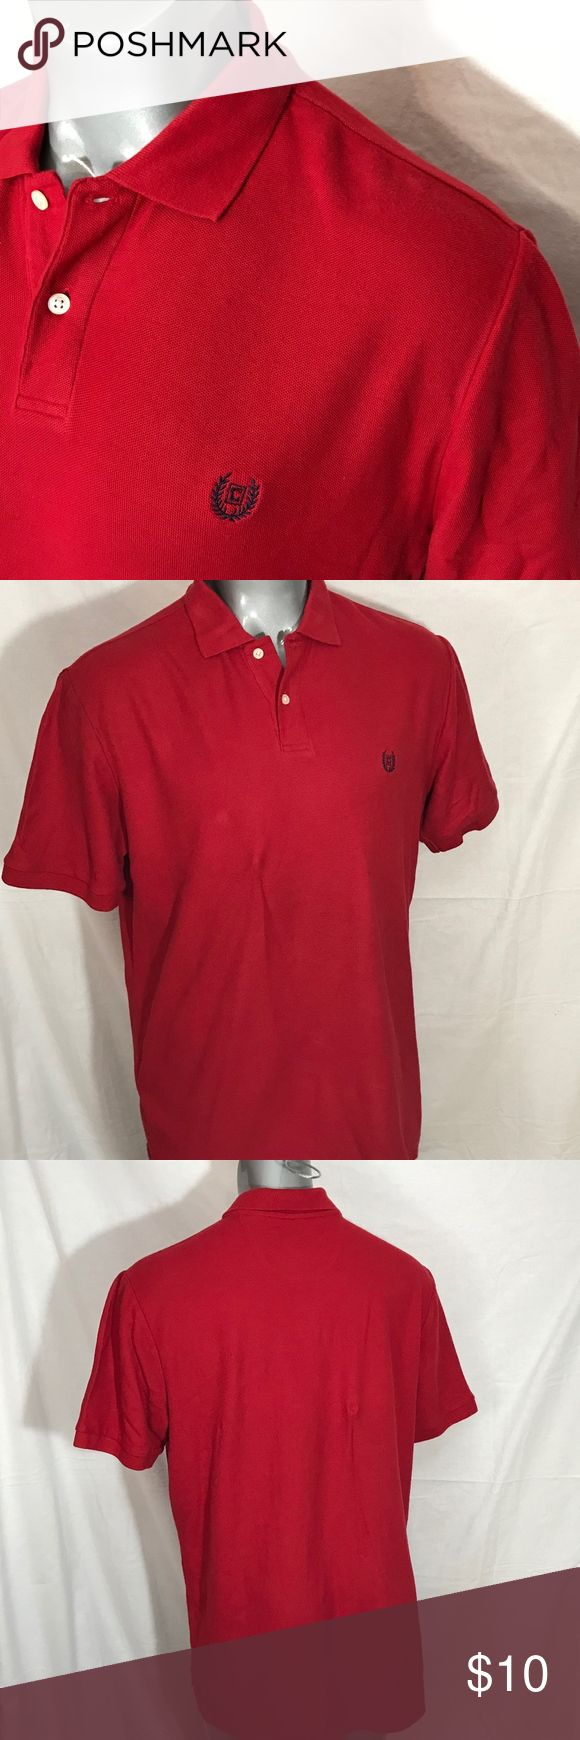 Chaps Men's Short Sleeve Polo Shirt - Large Chaps Men's Short Sleeve Polo Shirt Red Large Gently pre-owned condition - no tears, holes, snags, or stains. A little fading (Please see photos in listing) Chaps Shirts Polos